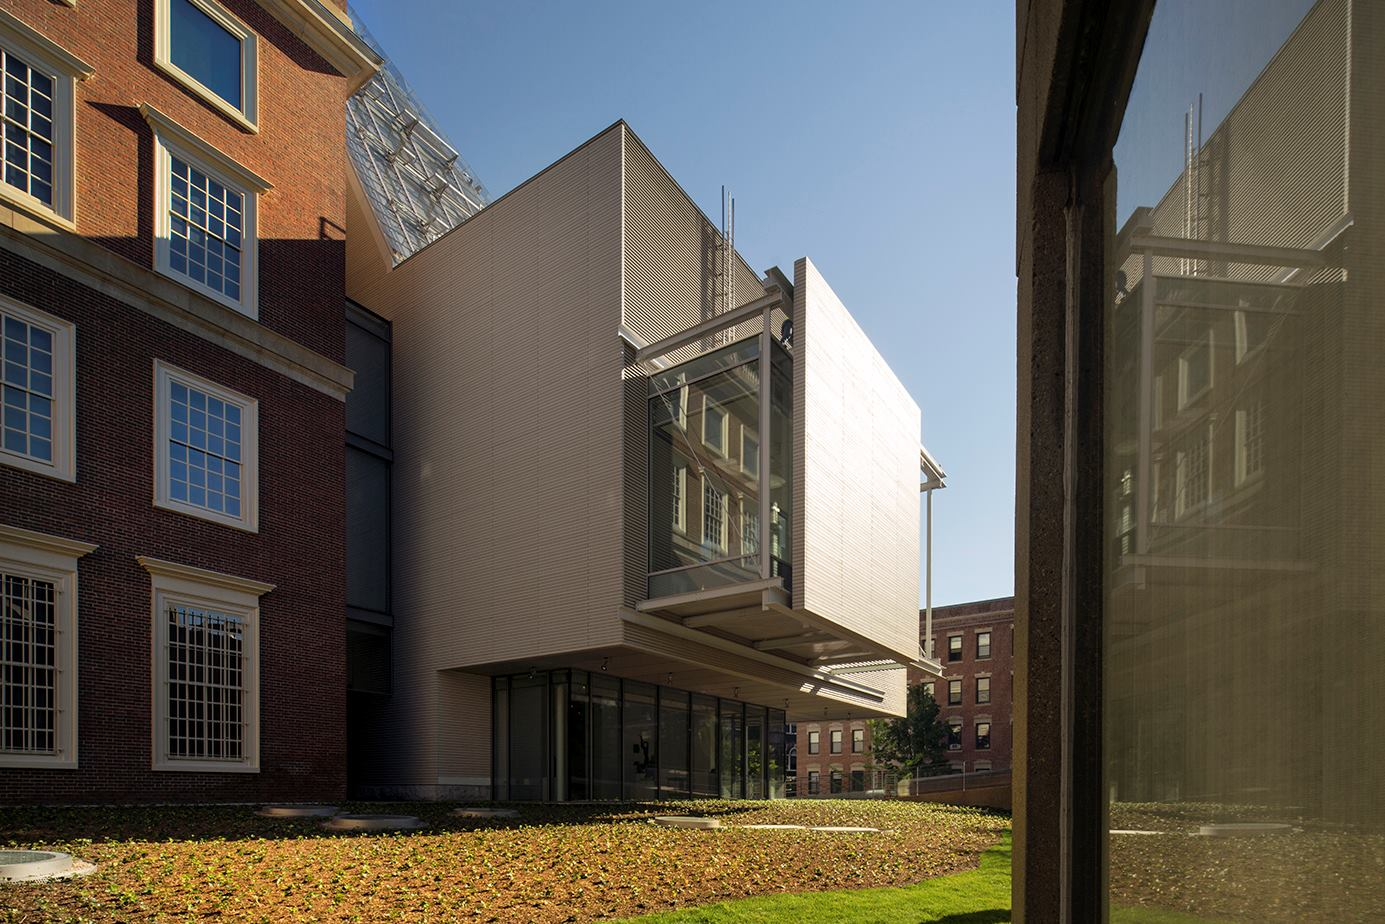 Harvard art museums slated to open sunday architect for Architecture harvard